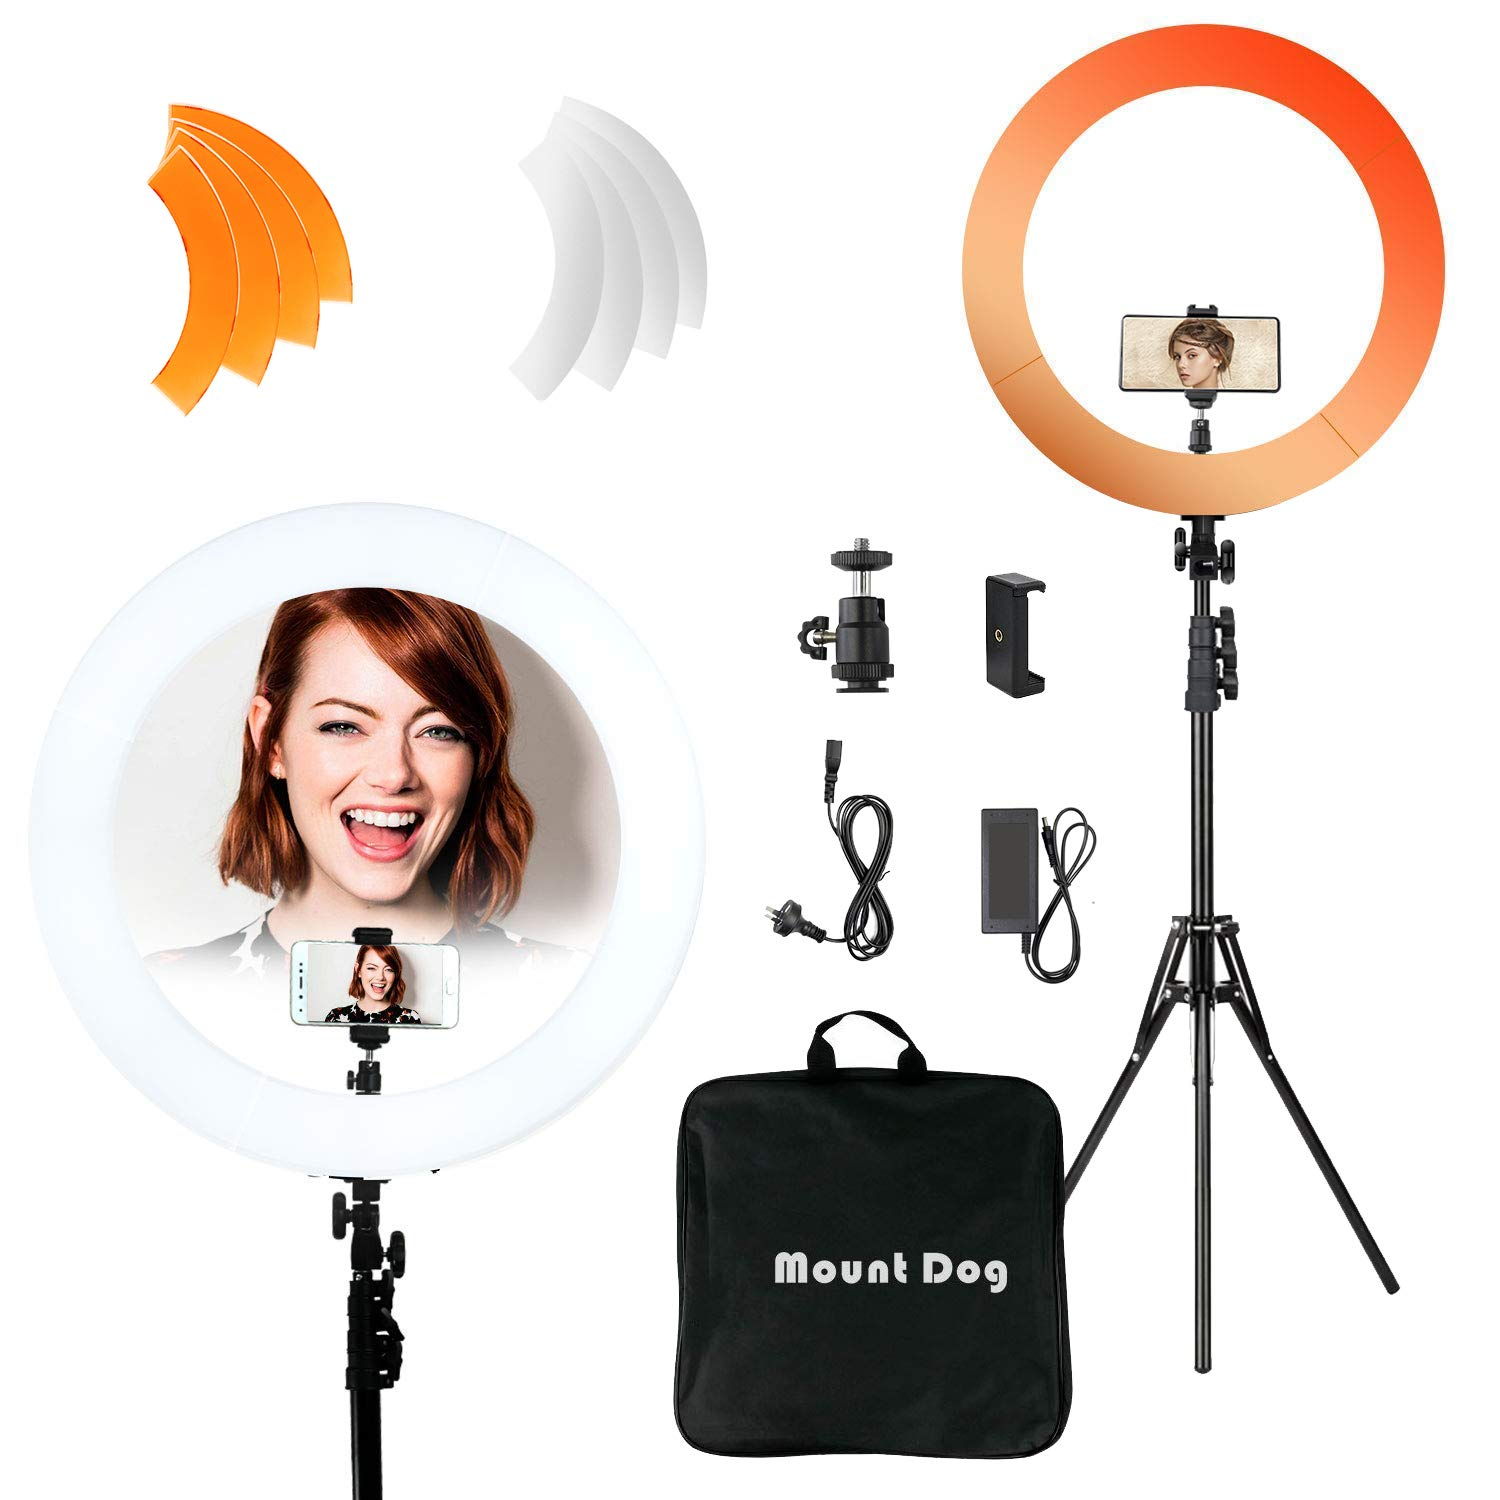 MOUNTDOG 18''/48cm YouTube Ring Light 55W 5500K Dimmable LED Ringlight Kit with Tripod Stand Circle Lighting for Video Filming Portrait Makeup by MOUNTDOG